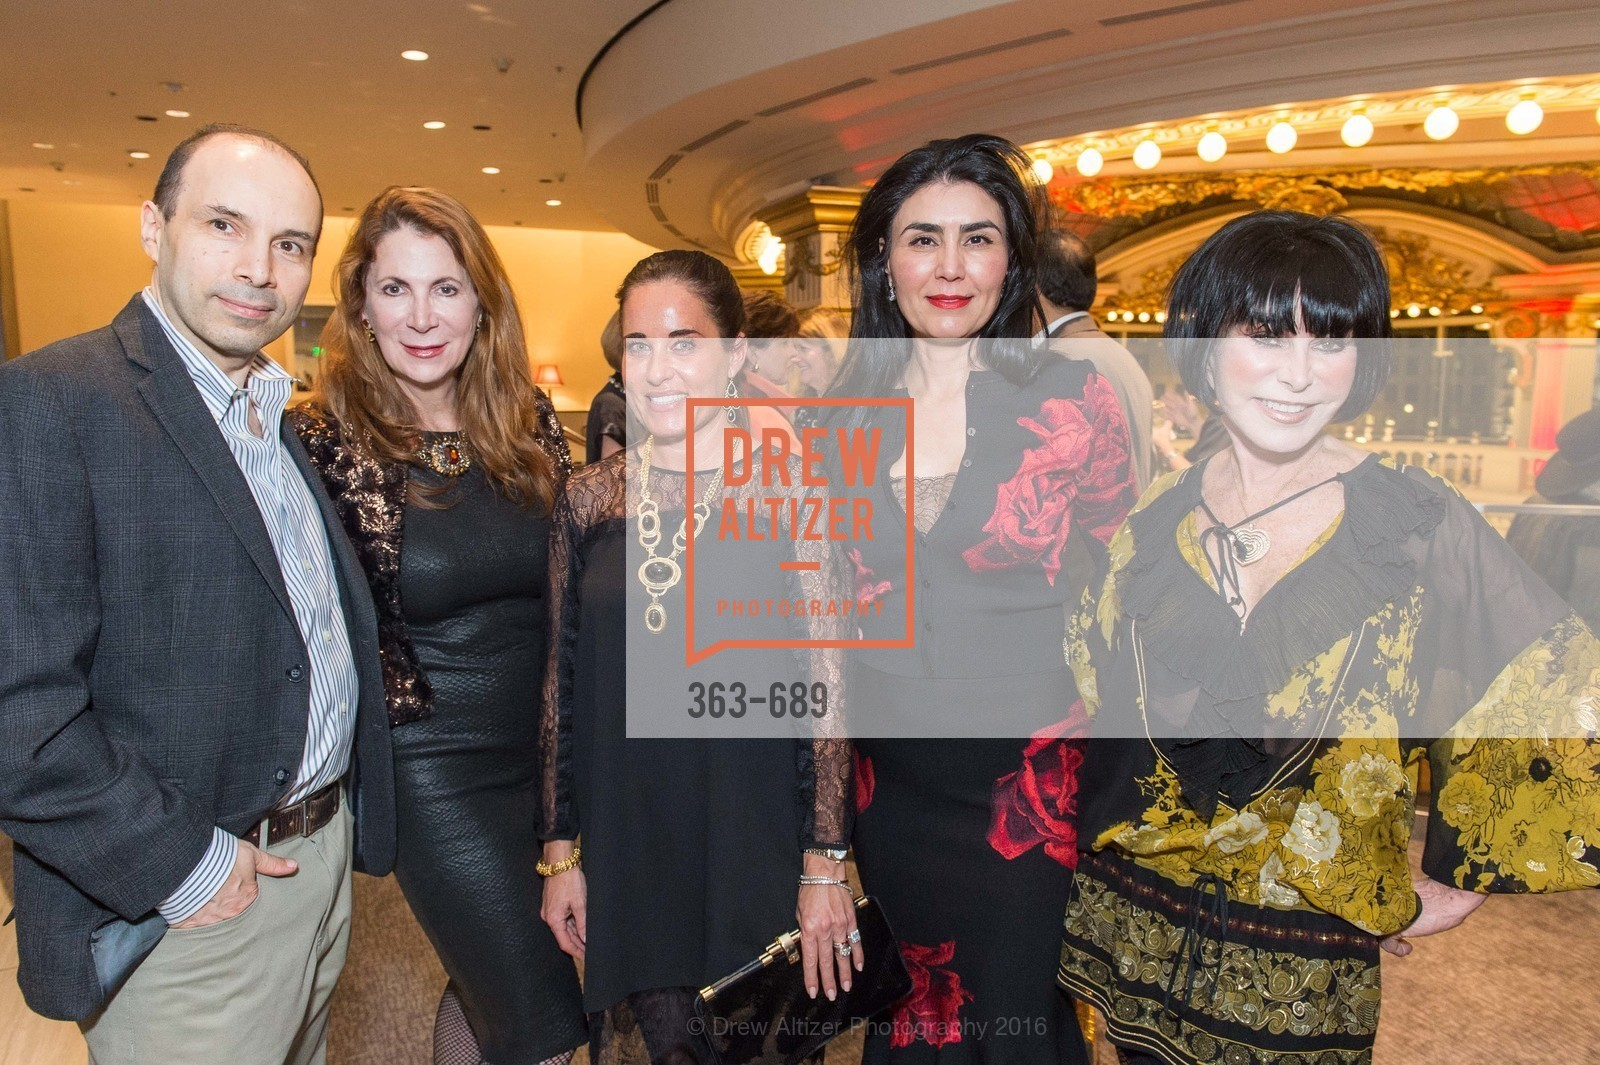 Mark Moasser, Patricia Ferrin Loucks, Natalia Urrutia, Afsaneh Akhtari, Marilyn Cabak, Oscar de la Renta Cocktail Party with Boaz Mazor, The Rotunda Restaurant, January 19th, 2016,Drew Altizer, Drew Altizer Photography, full-service agency, private events, San Francisco photographer, photographer california